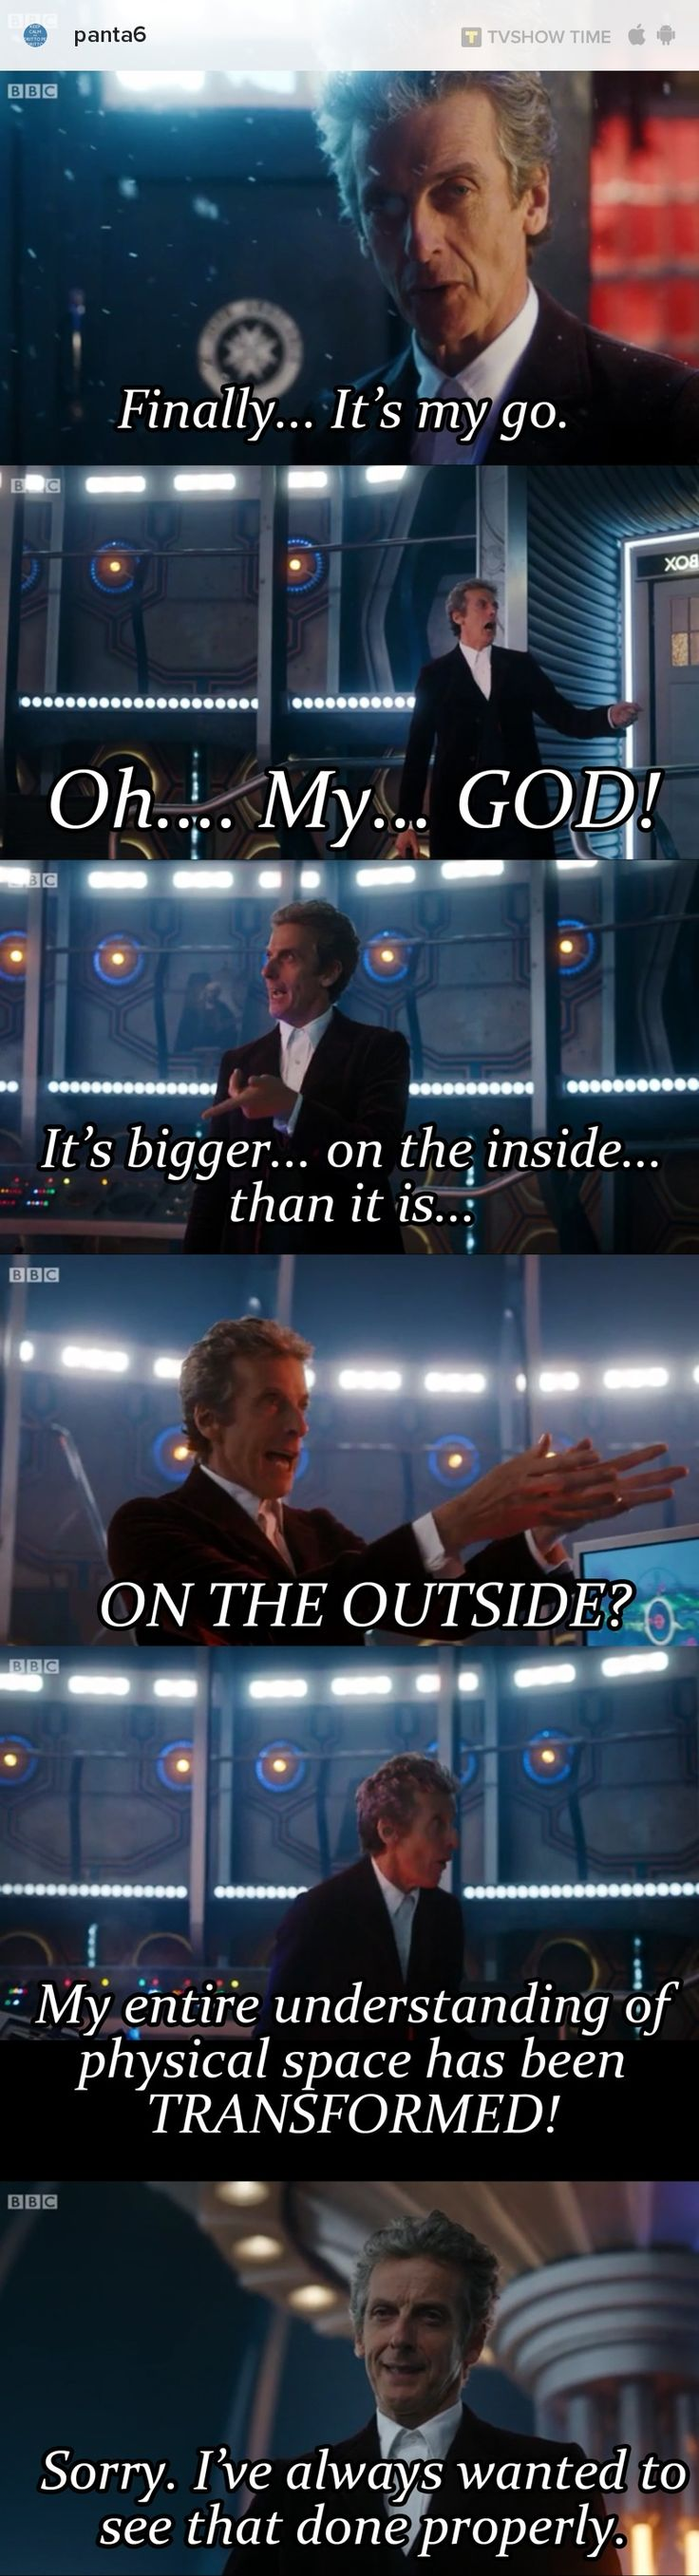 I wonder if Peter Capaldi has had this thought and the scene was inspired by his frustration as well :)